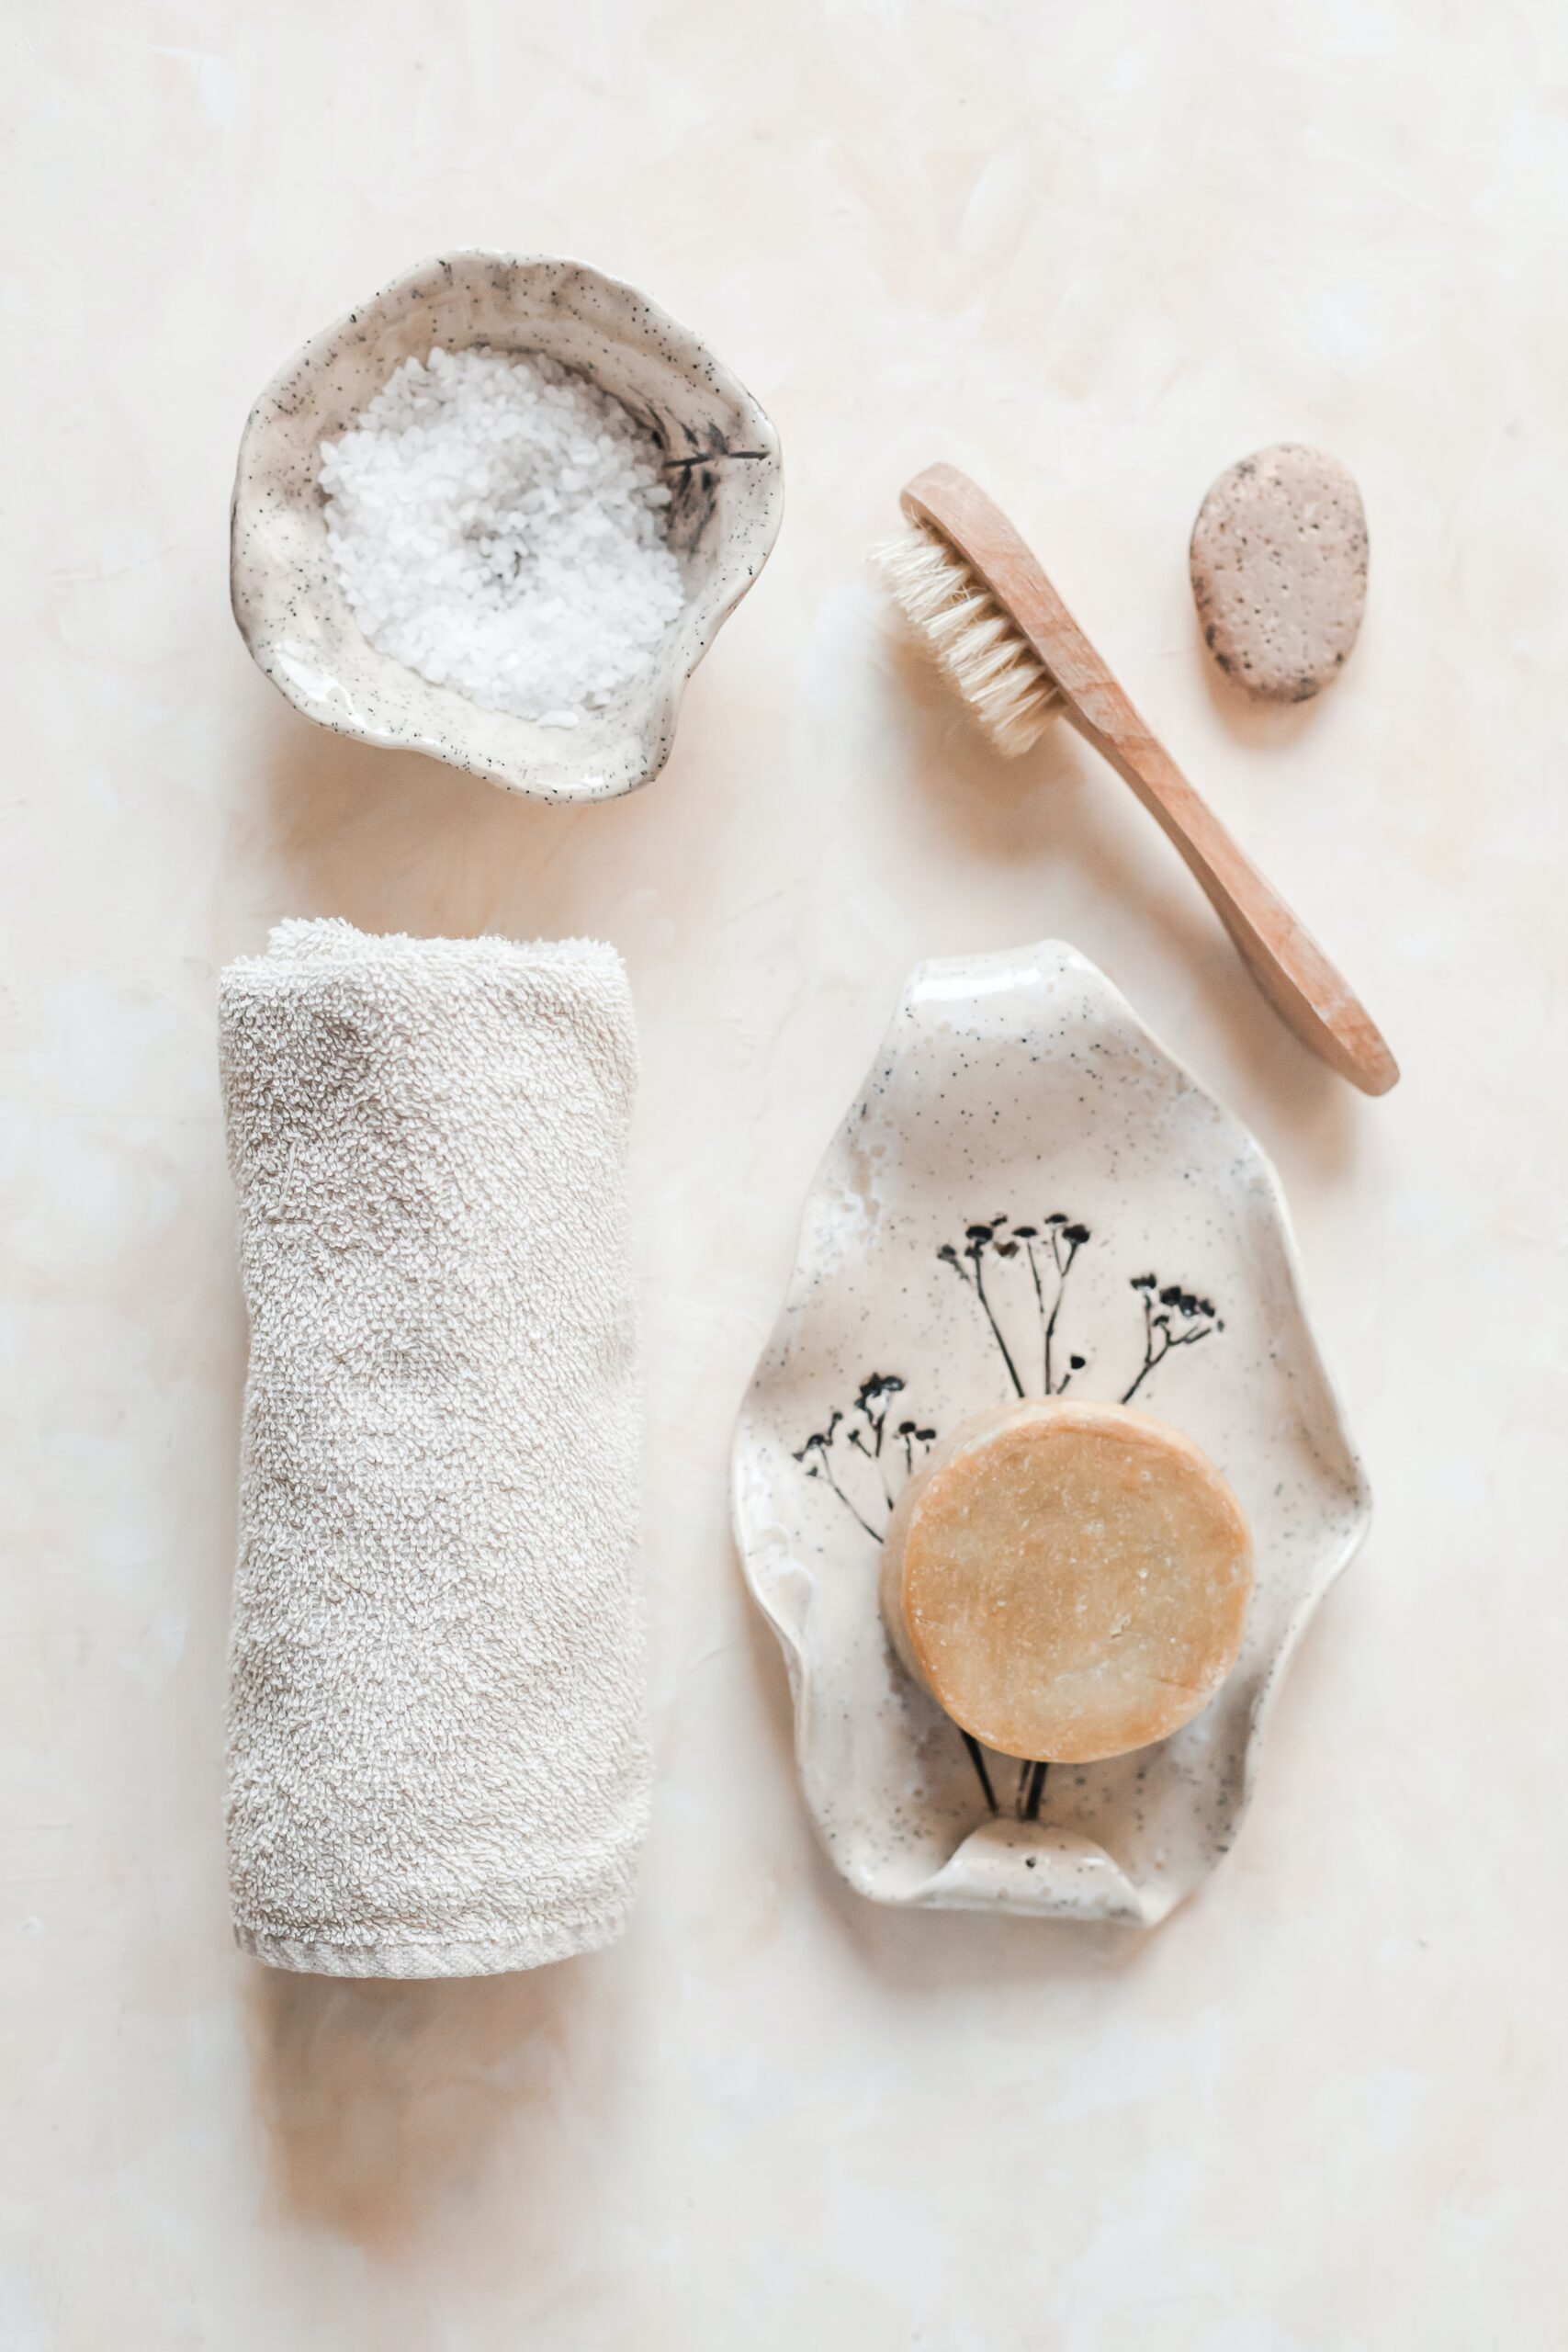 Non-toxic Beauty: What to look out for